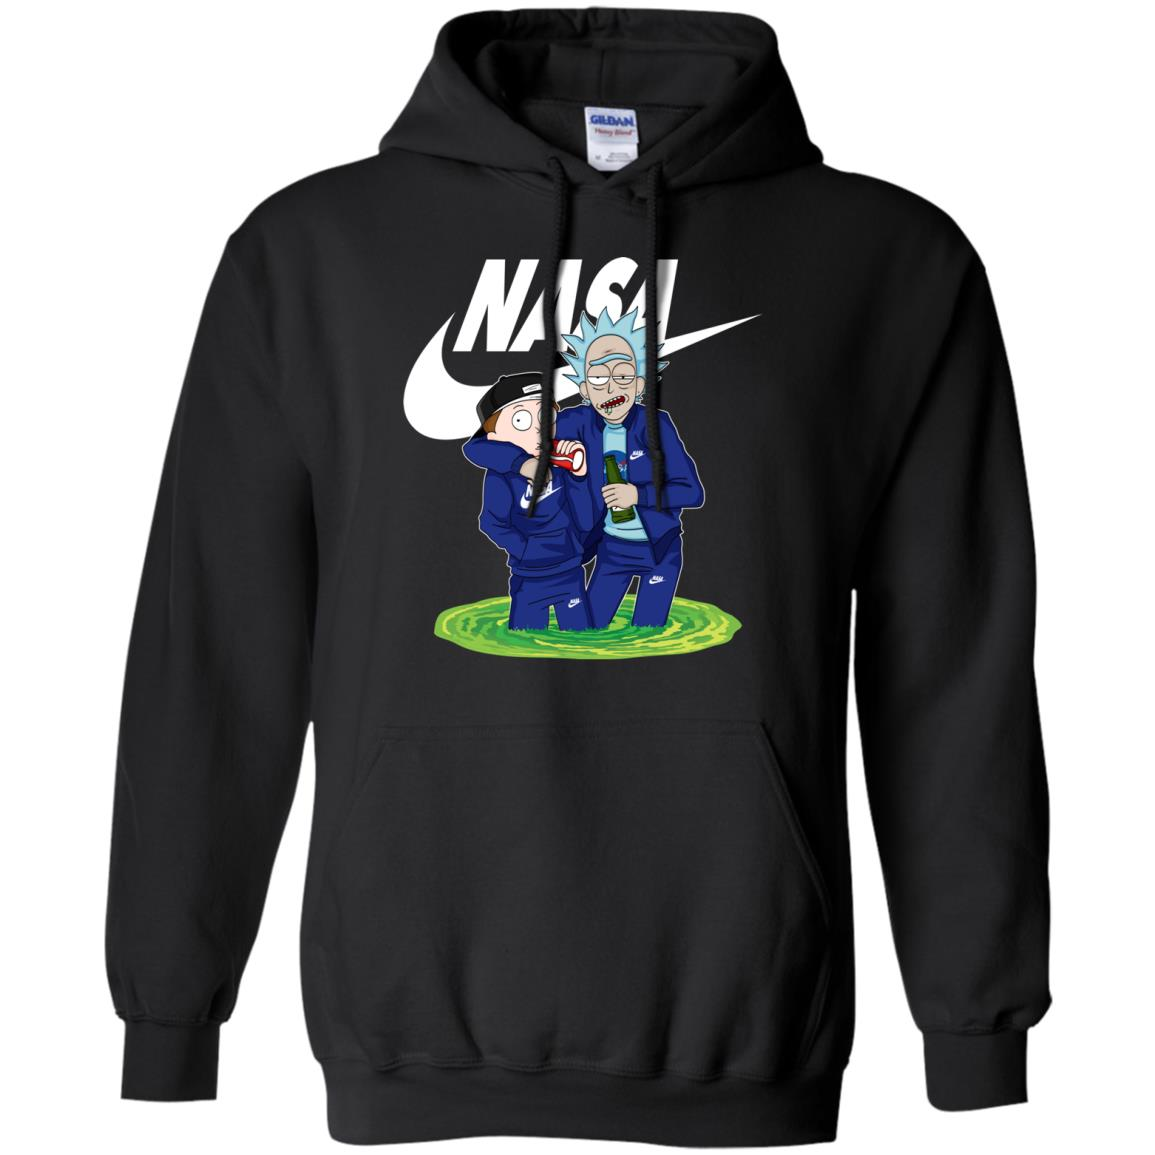 fb61ff29d729 Nasa Rick And Morty Hoodie Amazon Best Seller